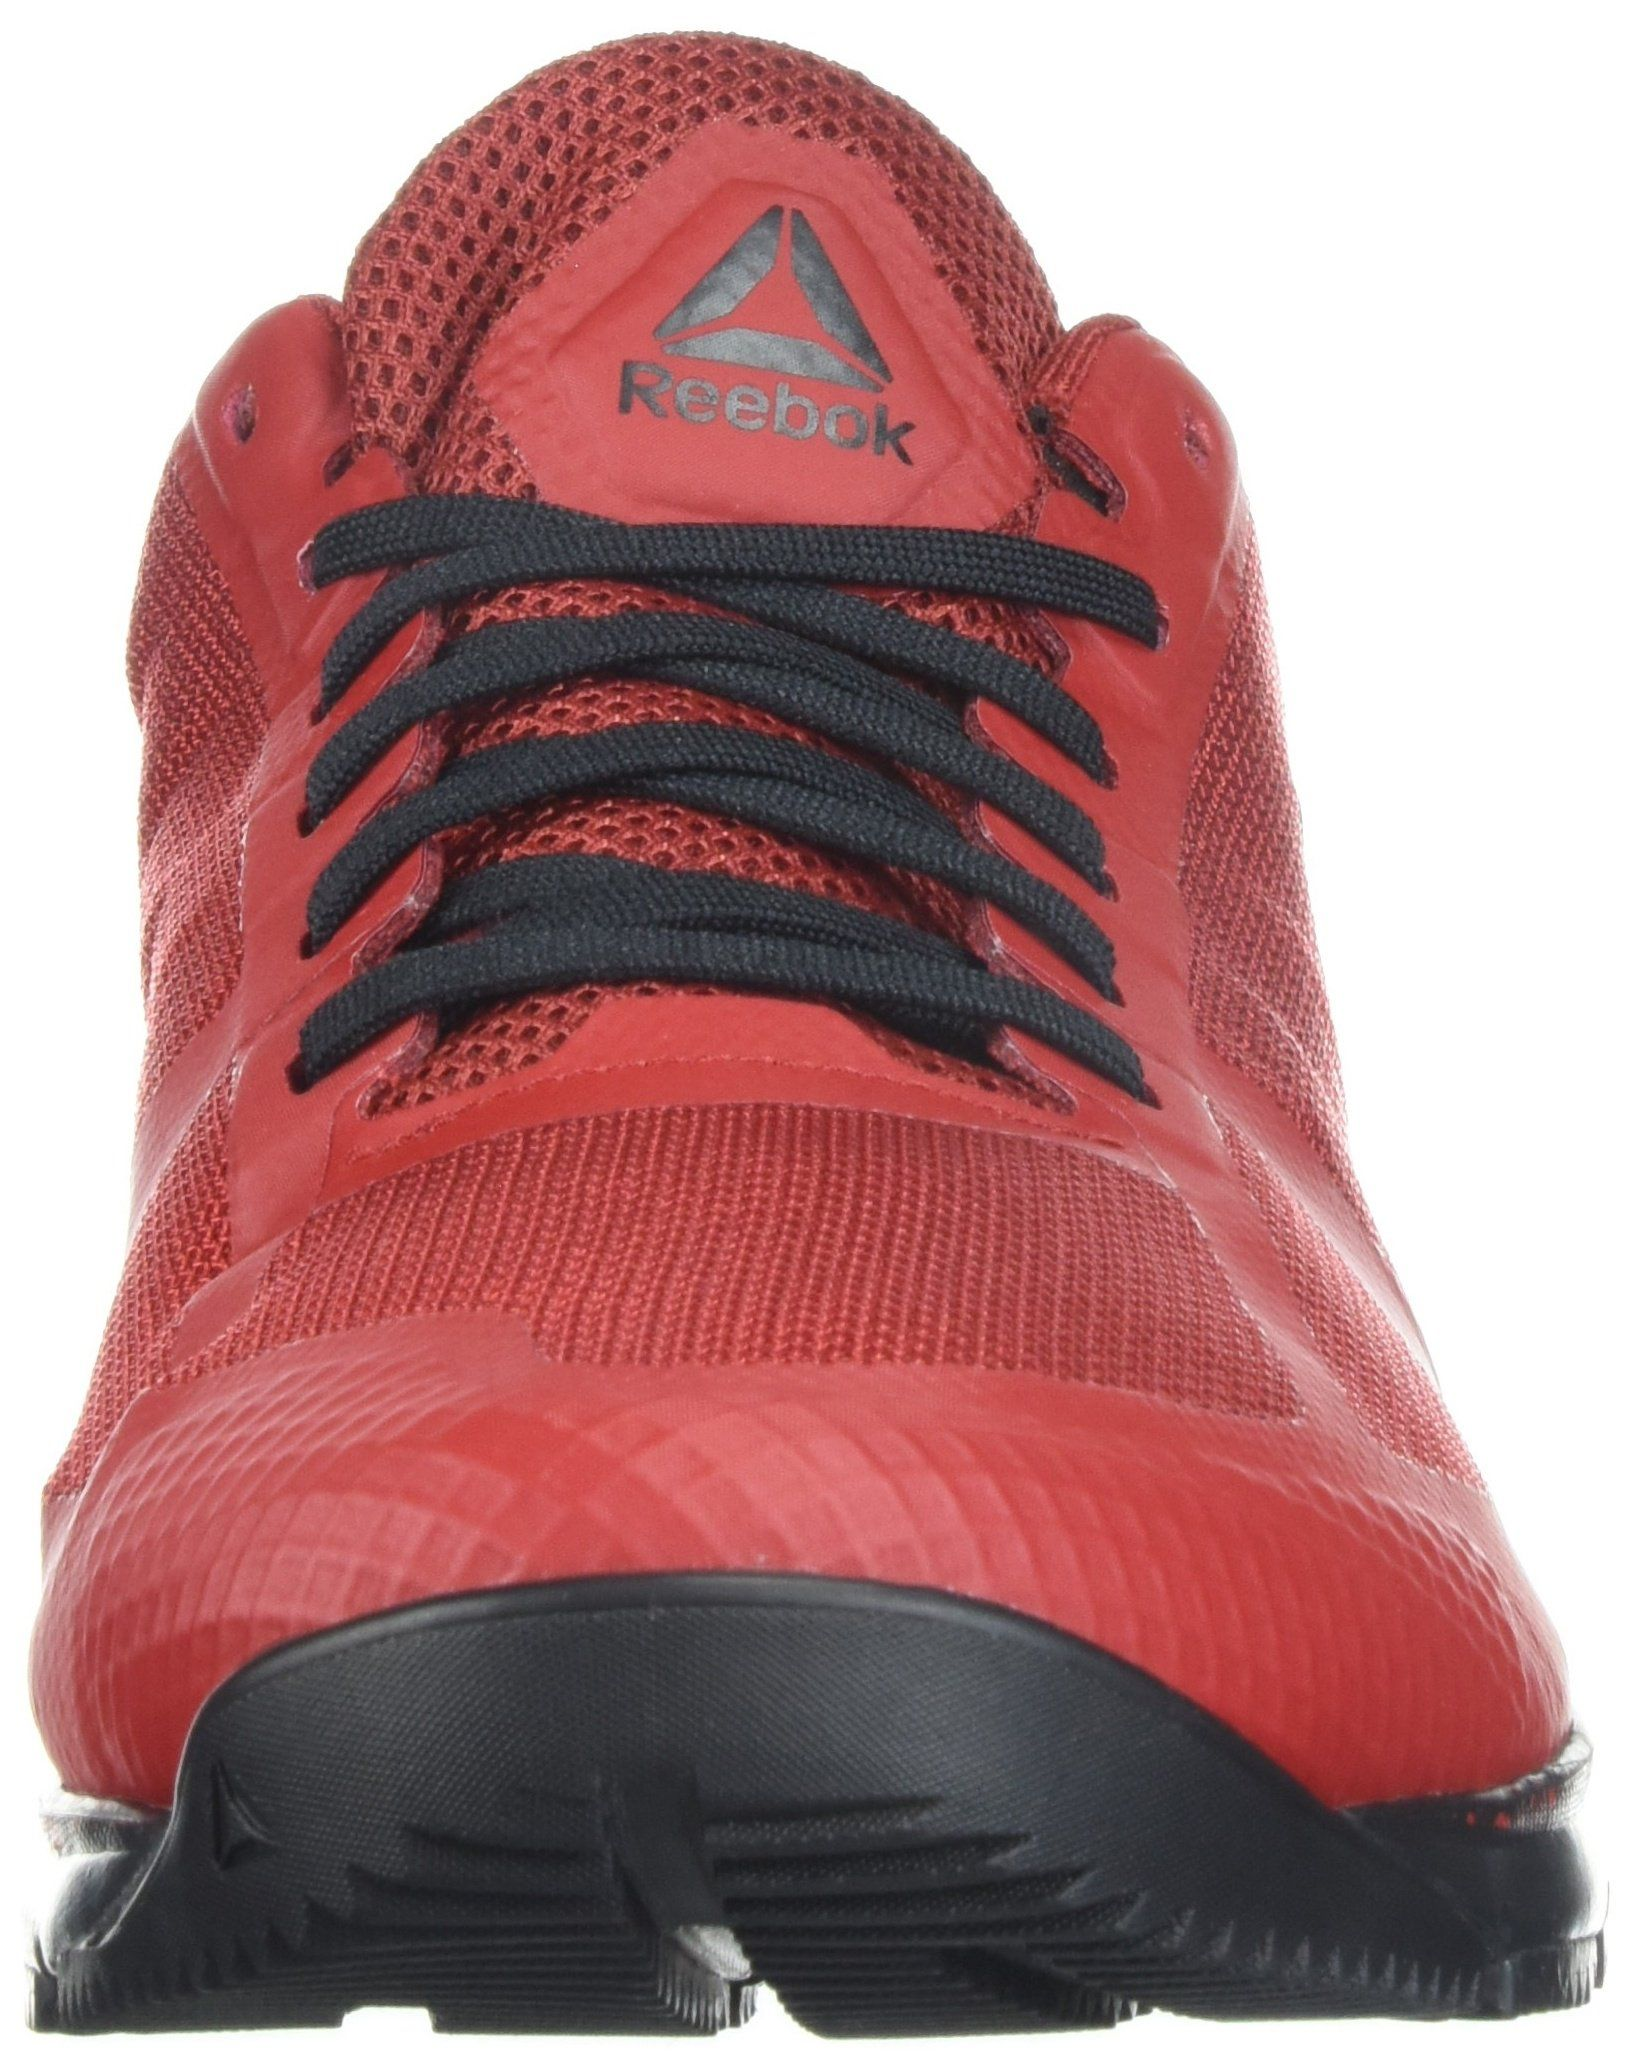 49cce35288c2 Reebok Mens Speed TR 2.0 Sneaker Rich Magma Black Primal Red 9.5 M US     Click image for more details.(It is Amazon affiliate link)   BestRunningShoesIdeas